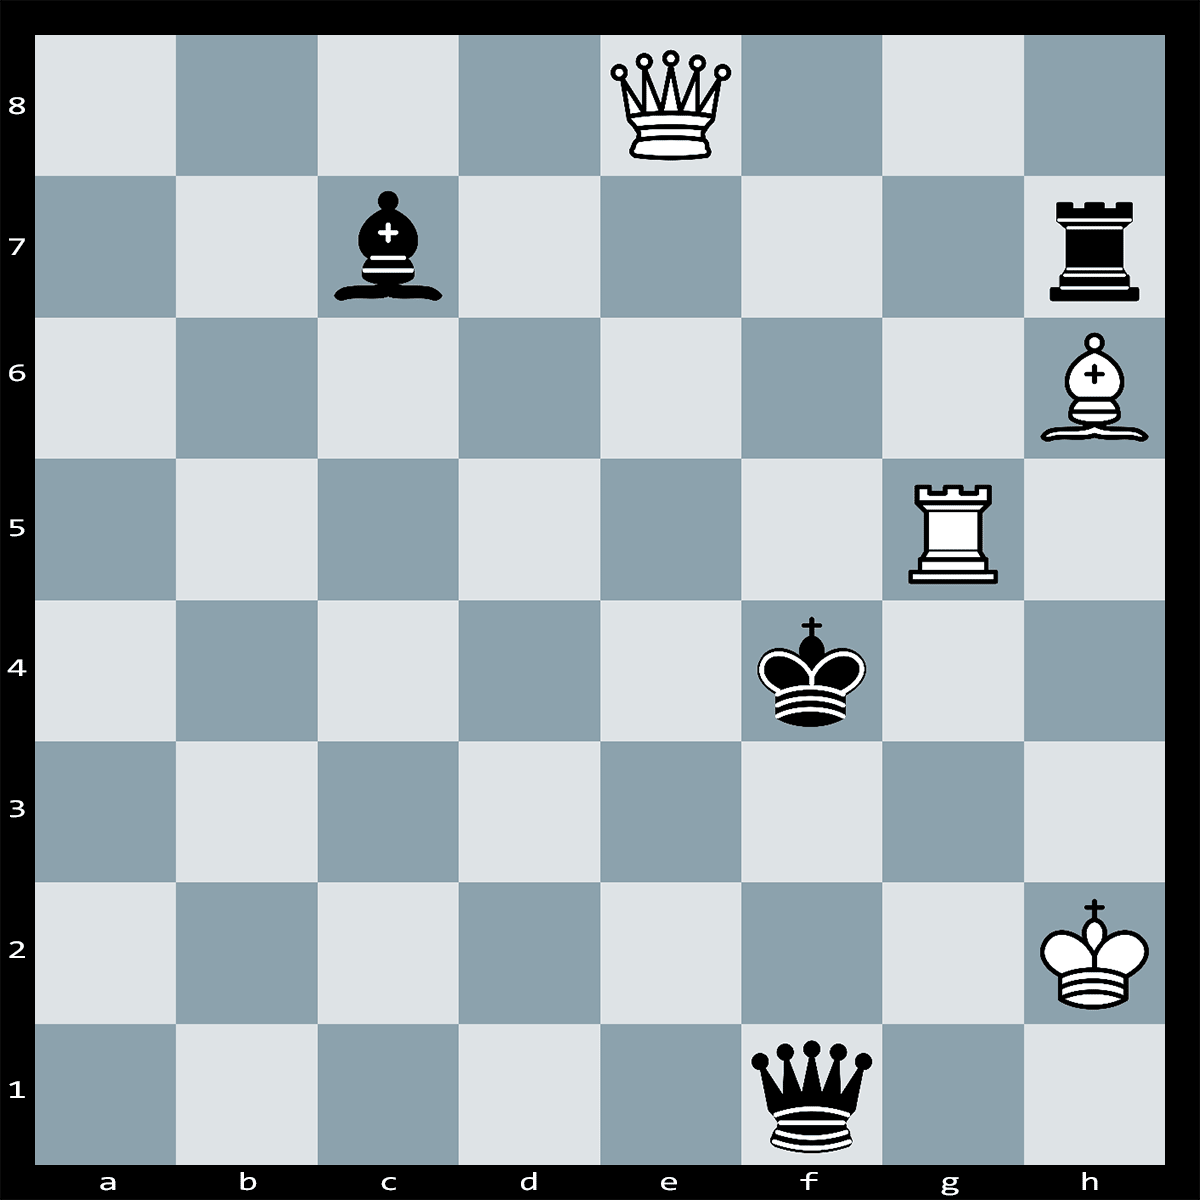 Chess Puzzle #293 | White can't win the game, but What is White's best move to escape with a draw?